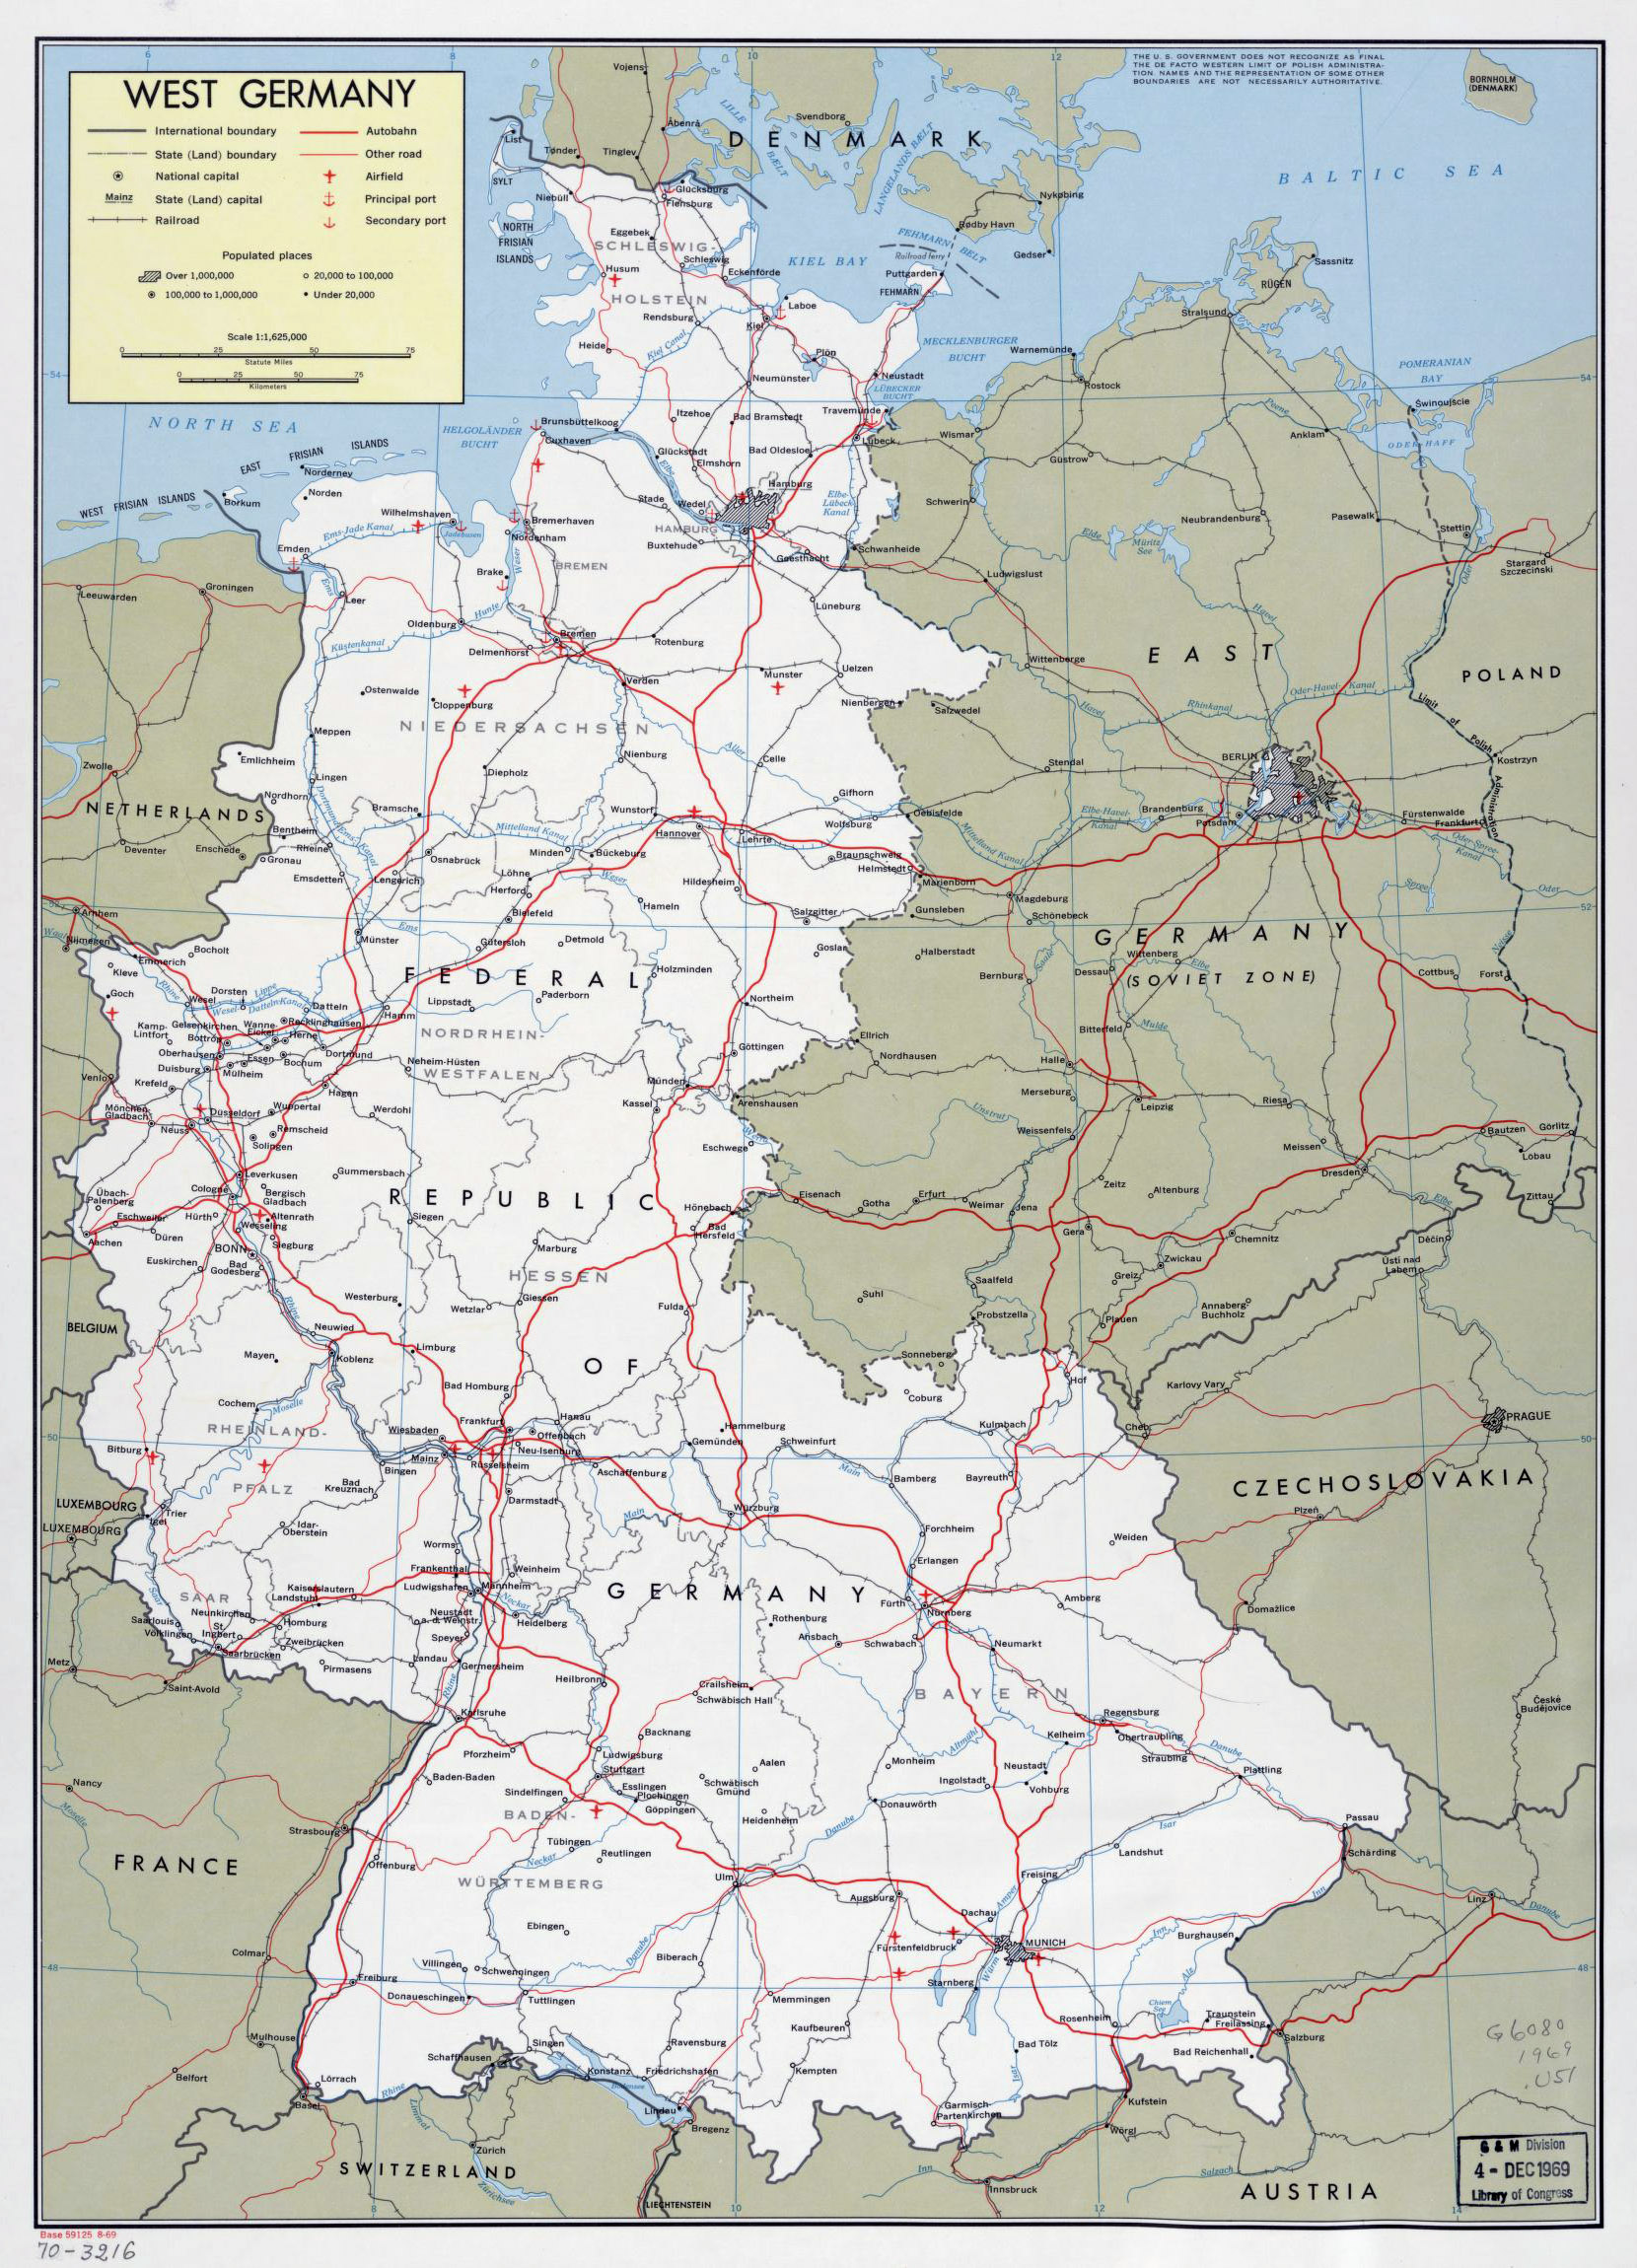 large political and administrative map of west germany with roads railroads airports seaports